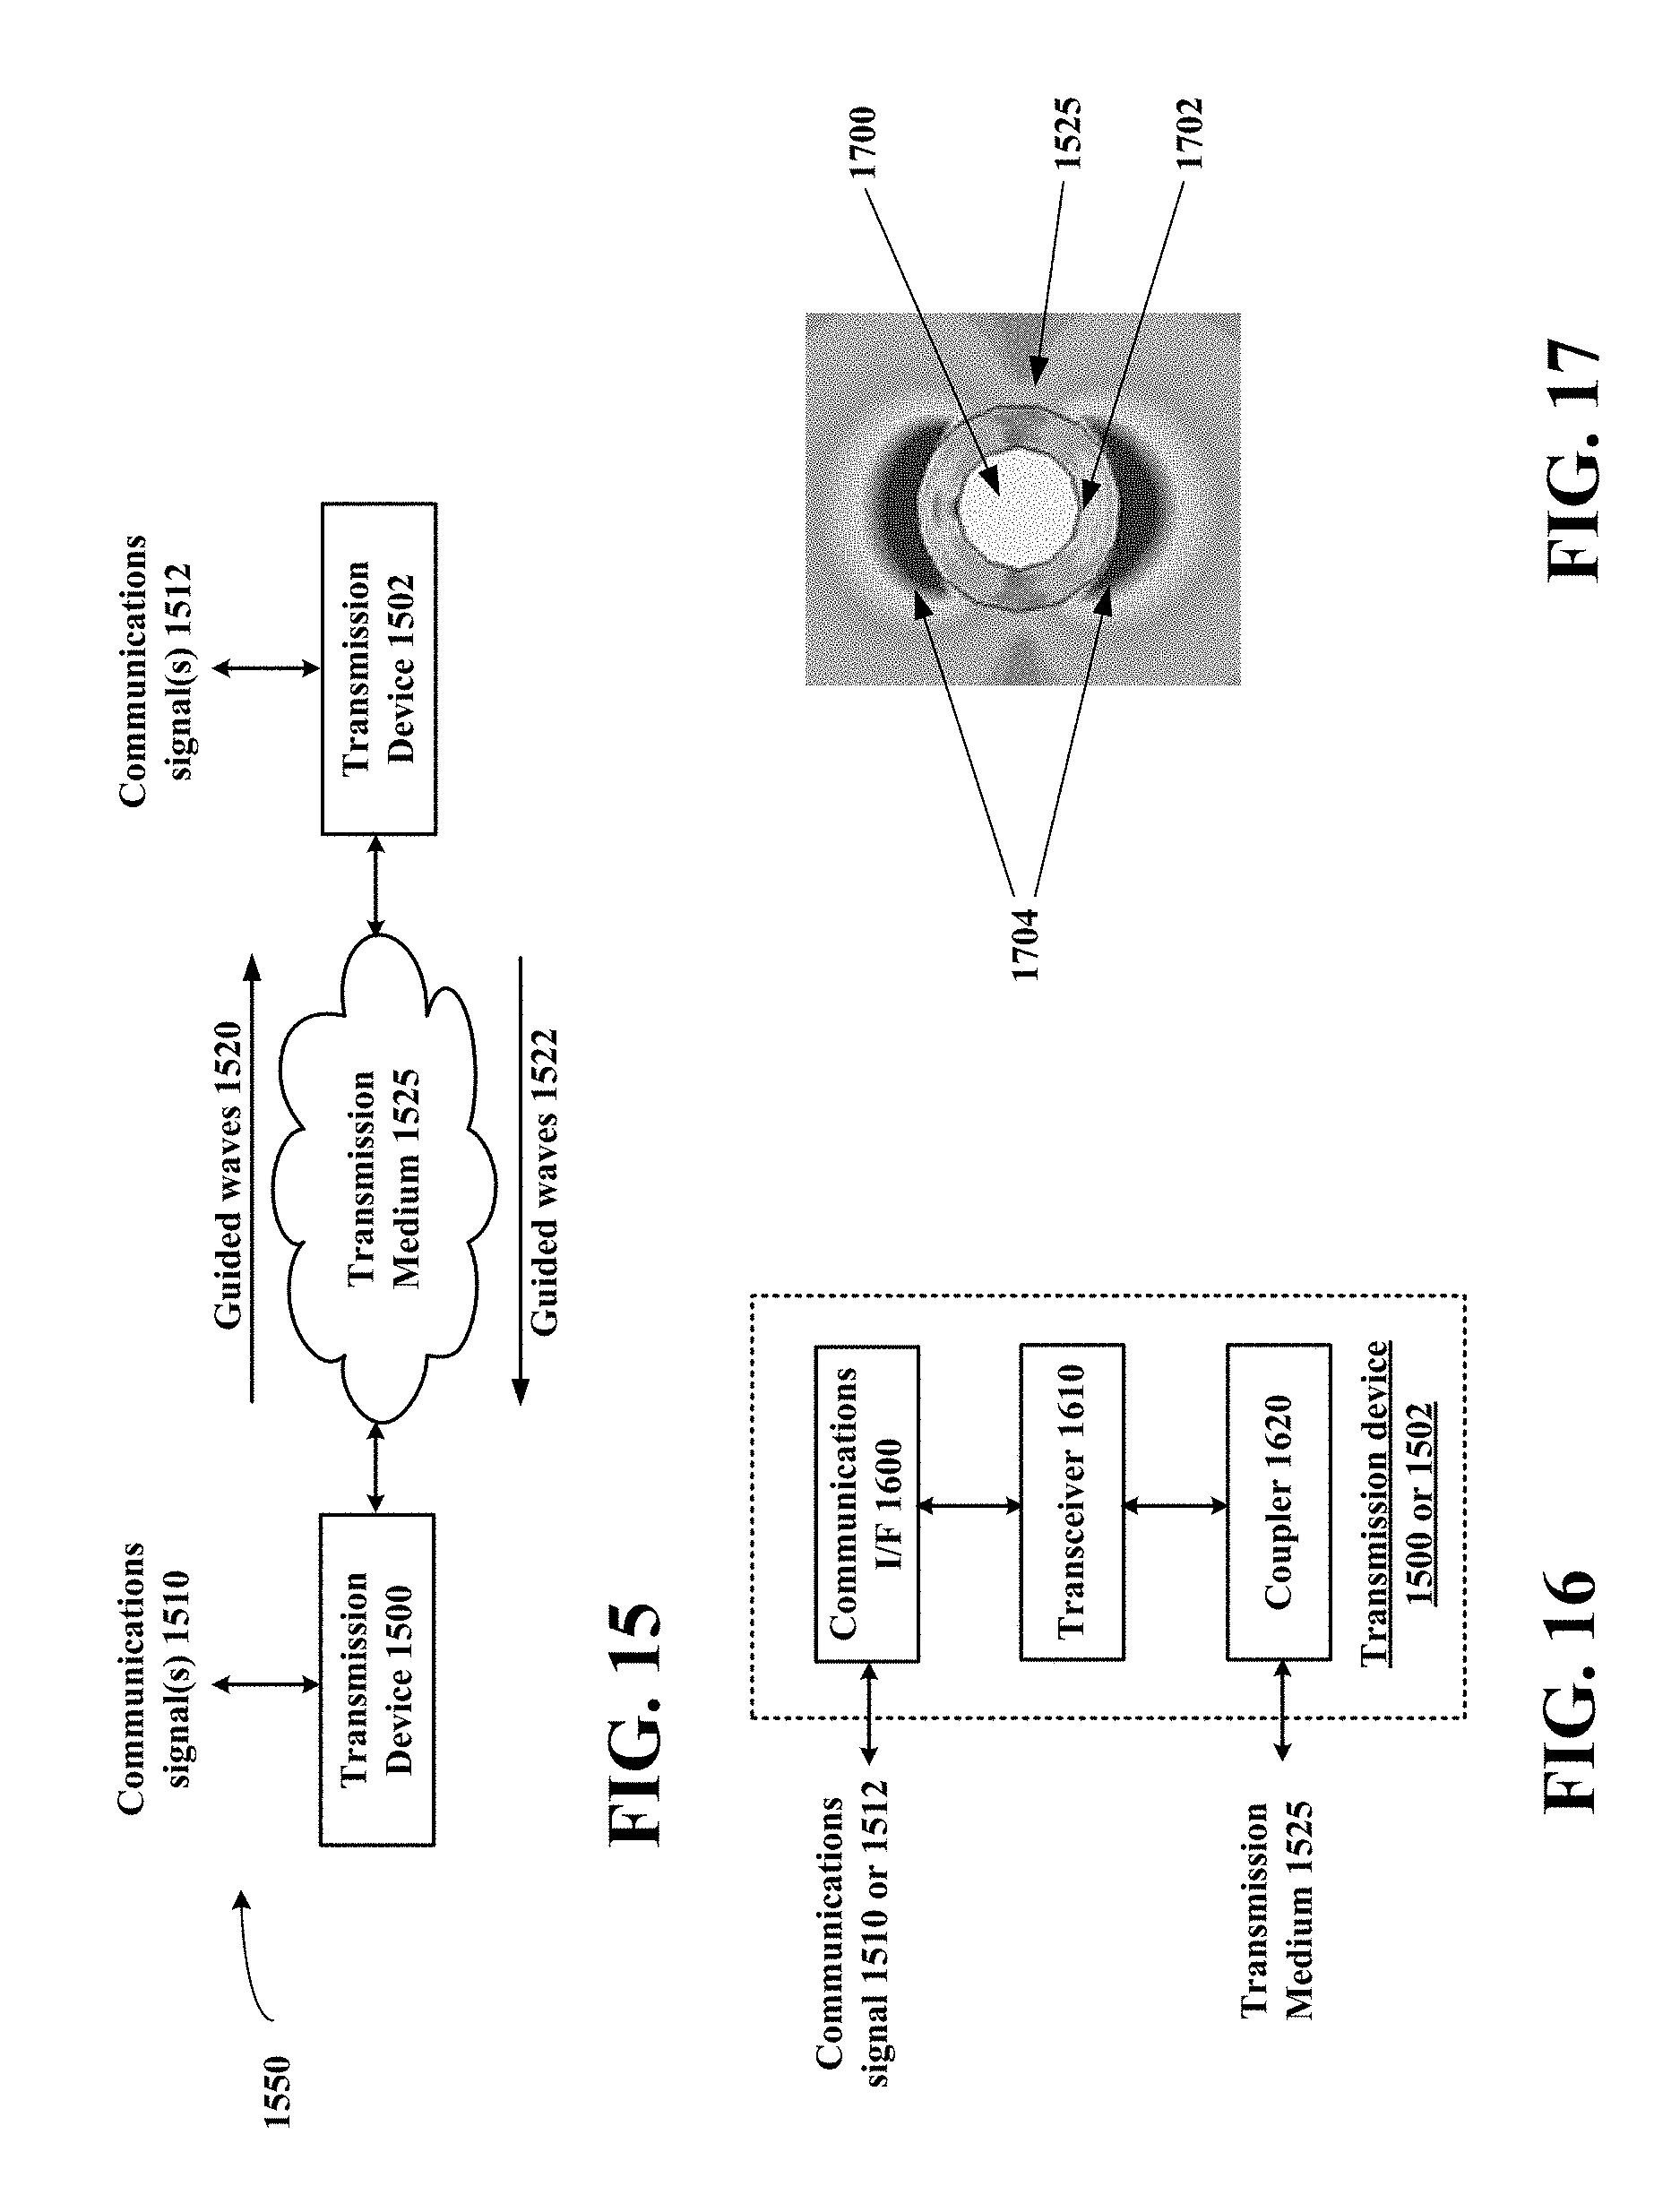 us b guided wave transmission device with non fundamental